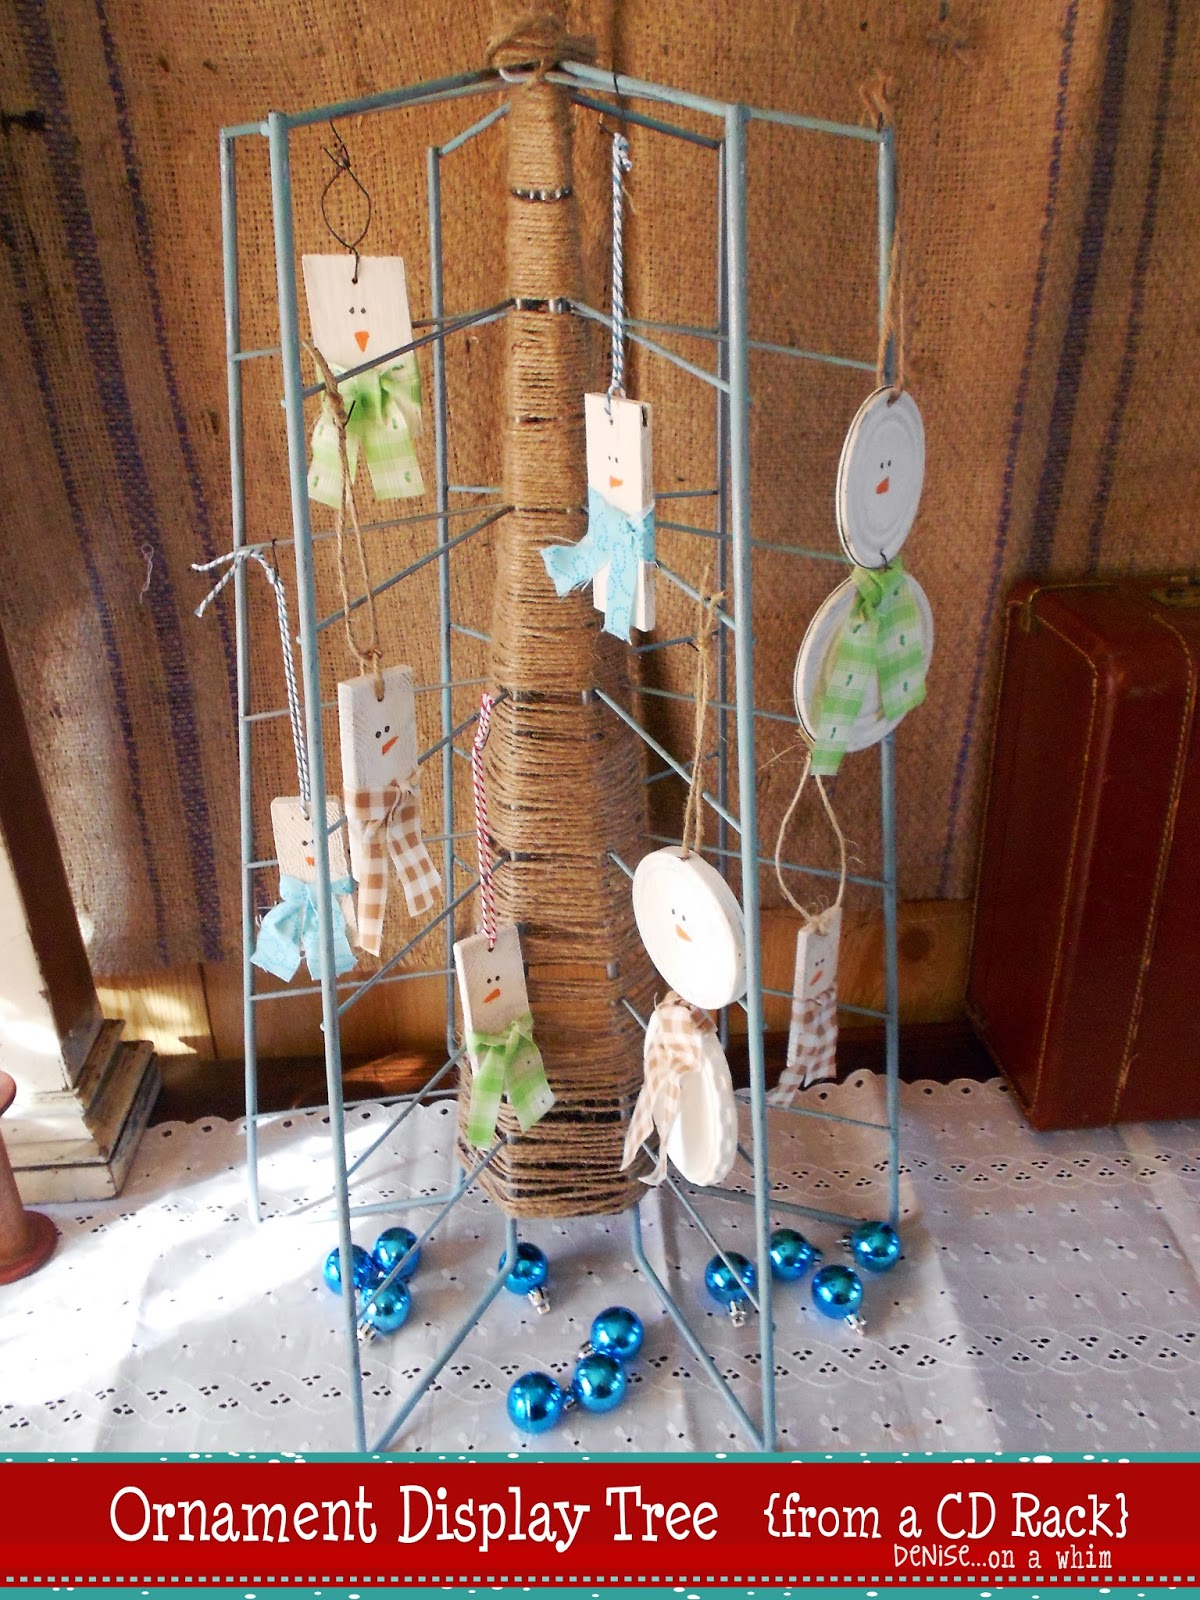 Christmas tree ornament display - Upcycling An Old Cd Holder As A Tree For Displaying Ornaments